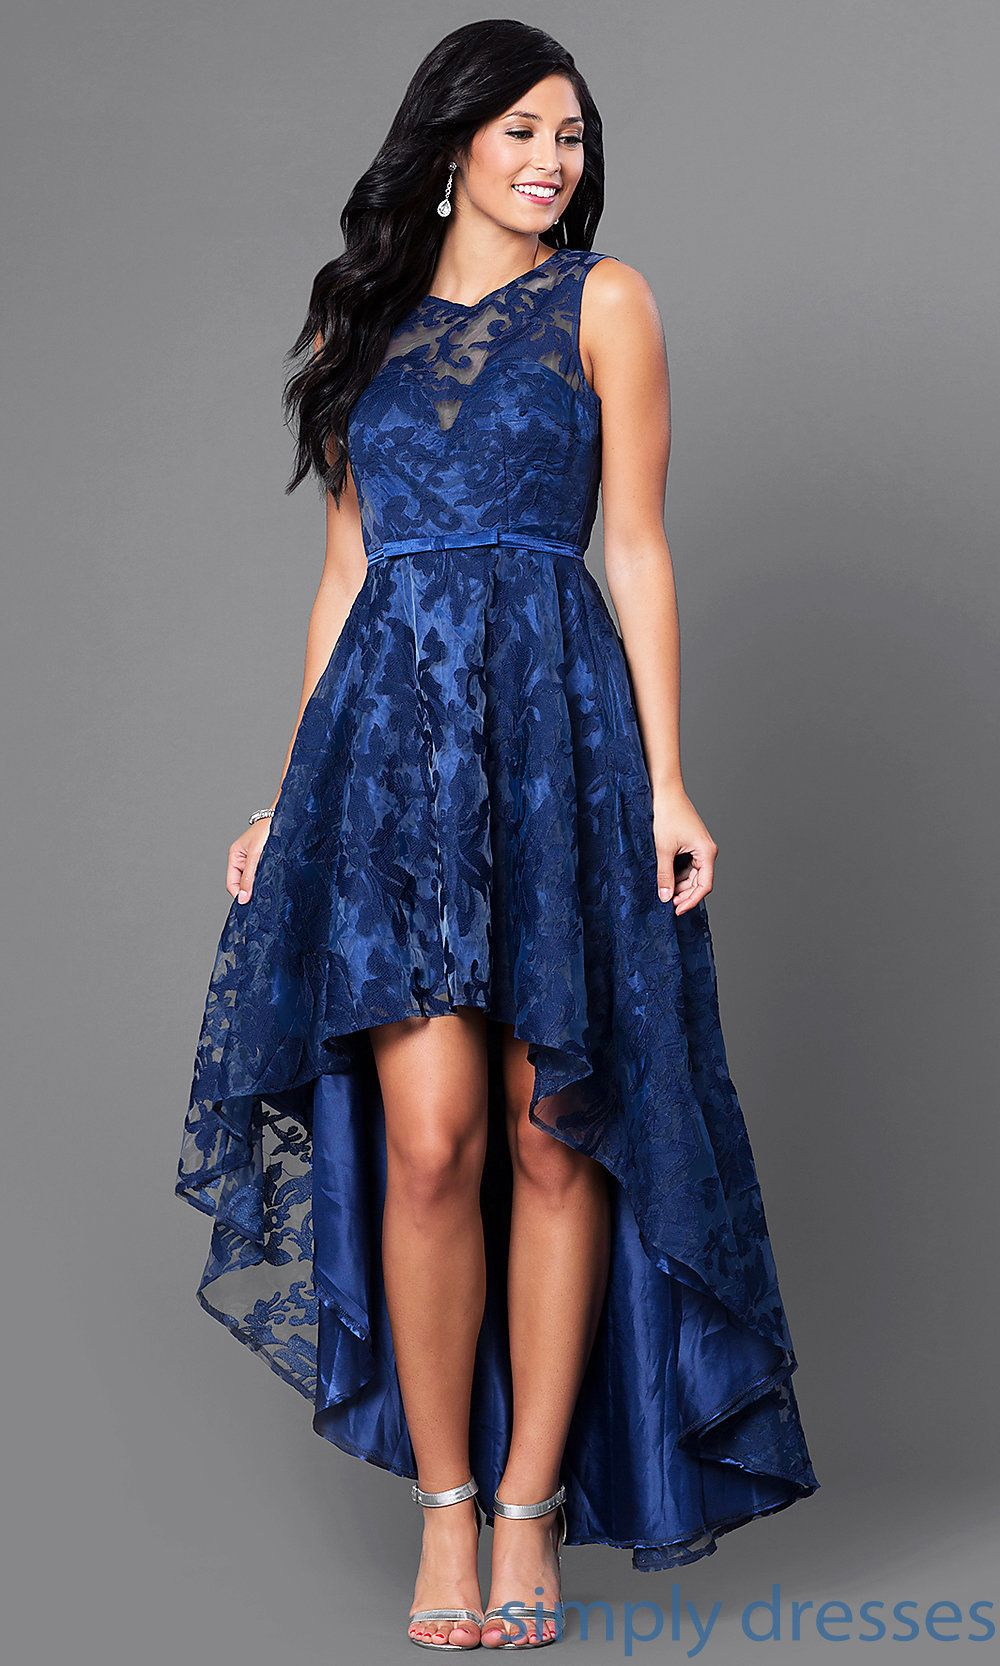 Lace highlow sleeveless semiformal party dress roupas